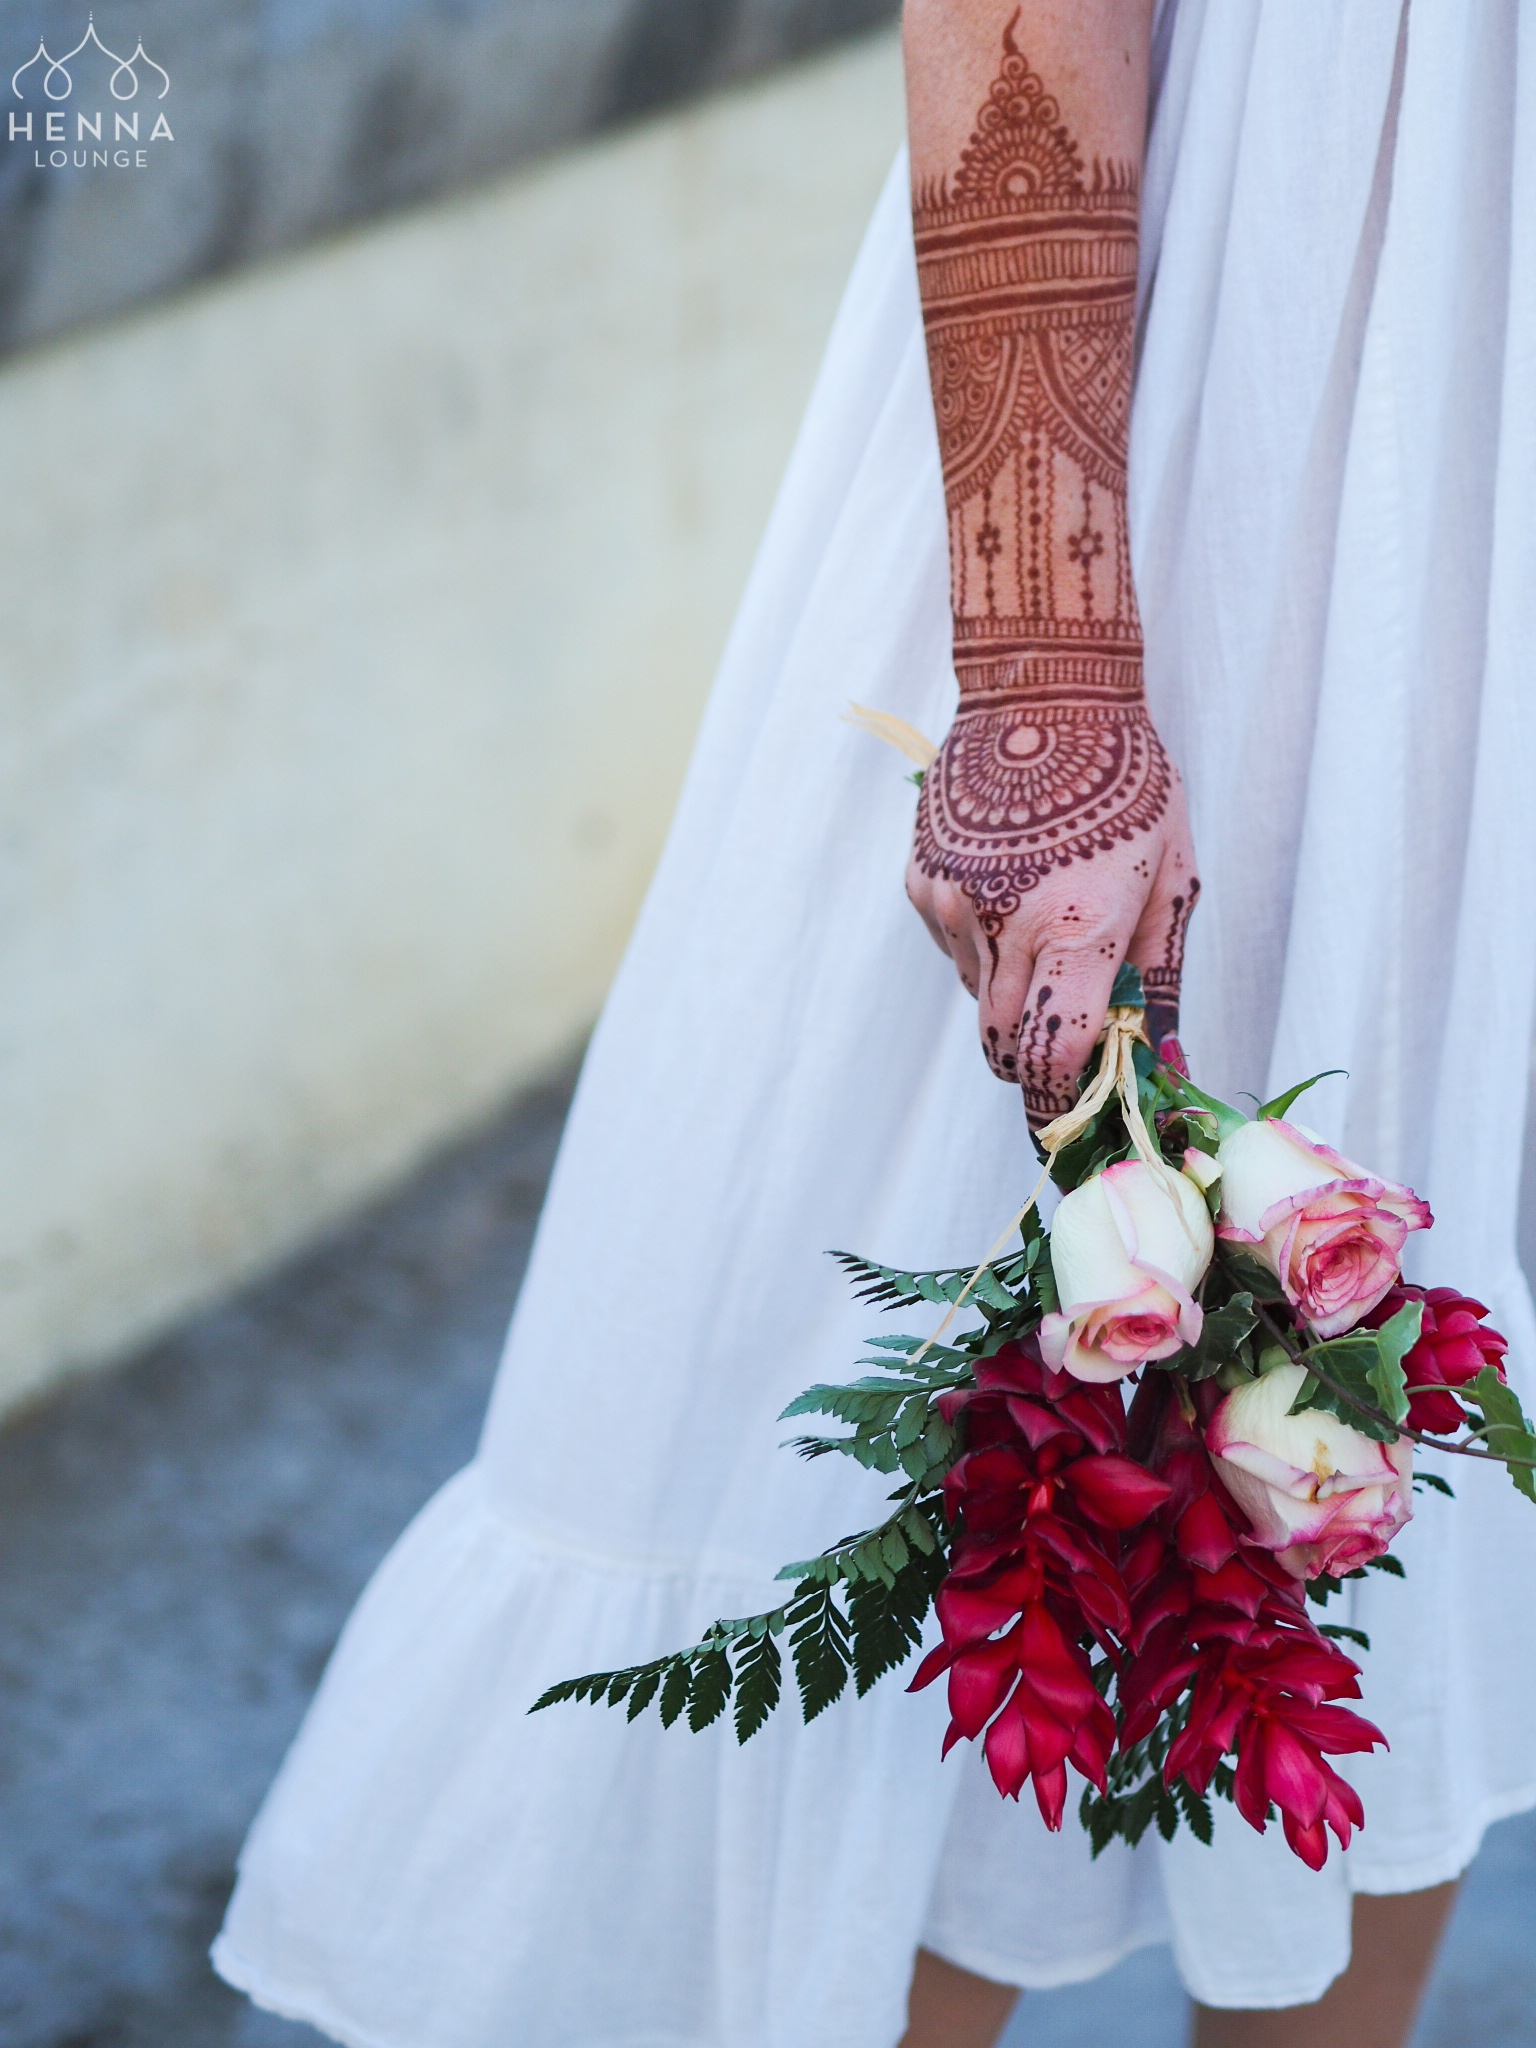 havana henna wedding.jpg